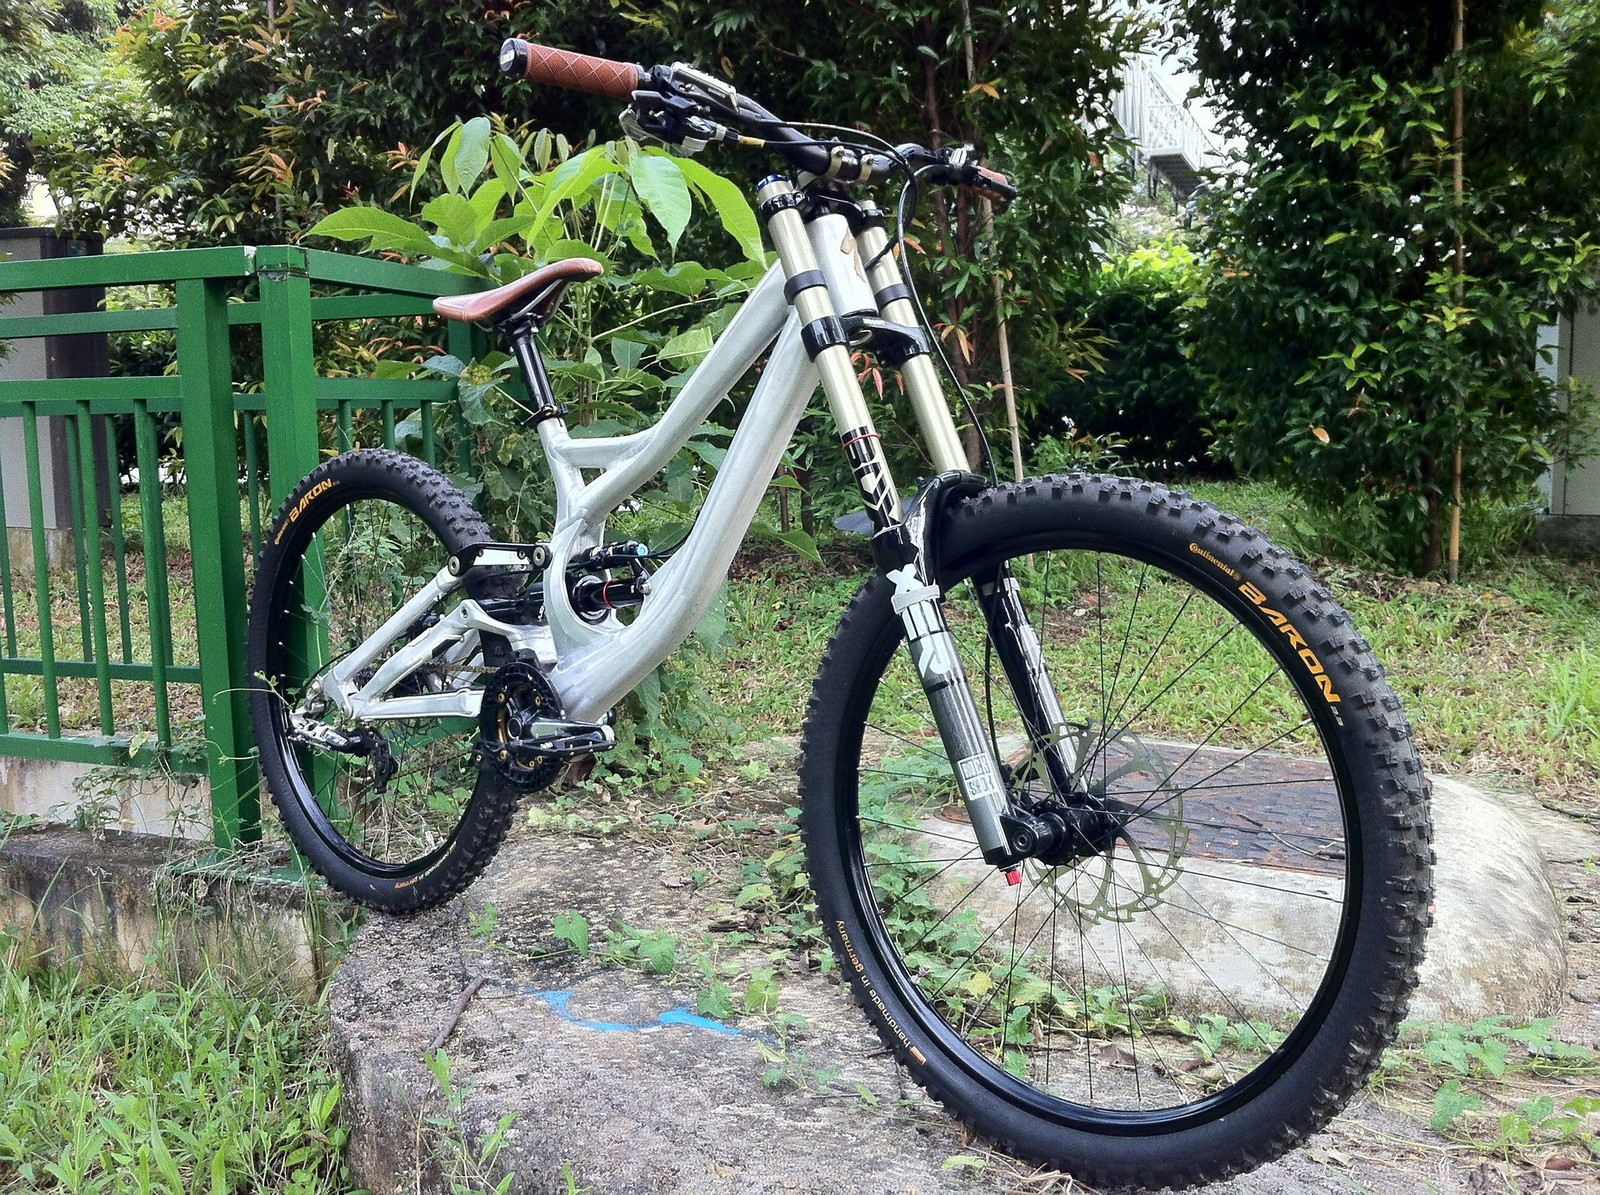 2011 Specialized Demo (Rawed)